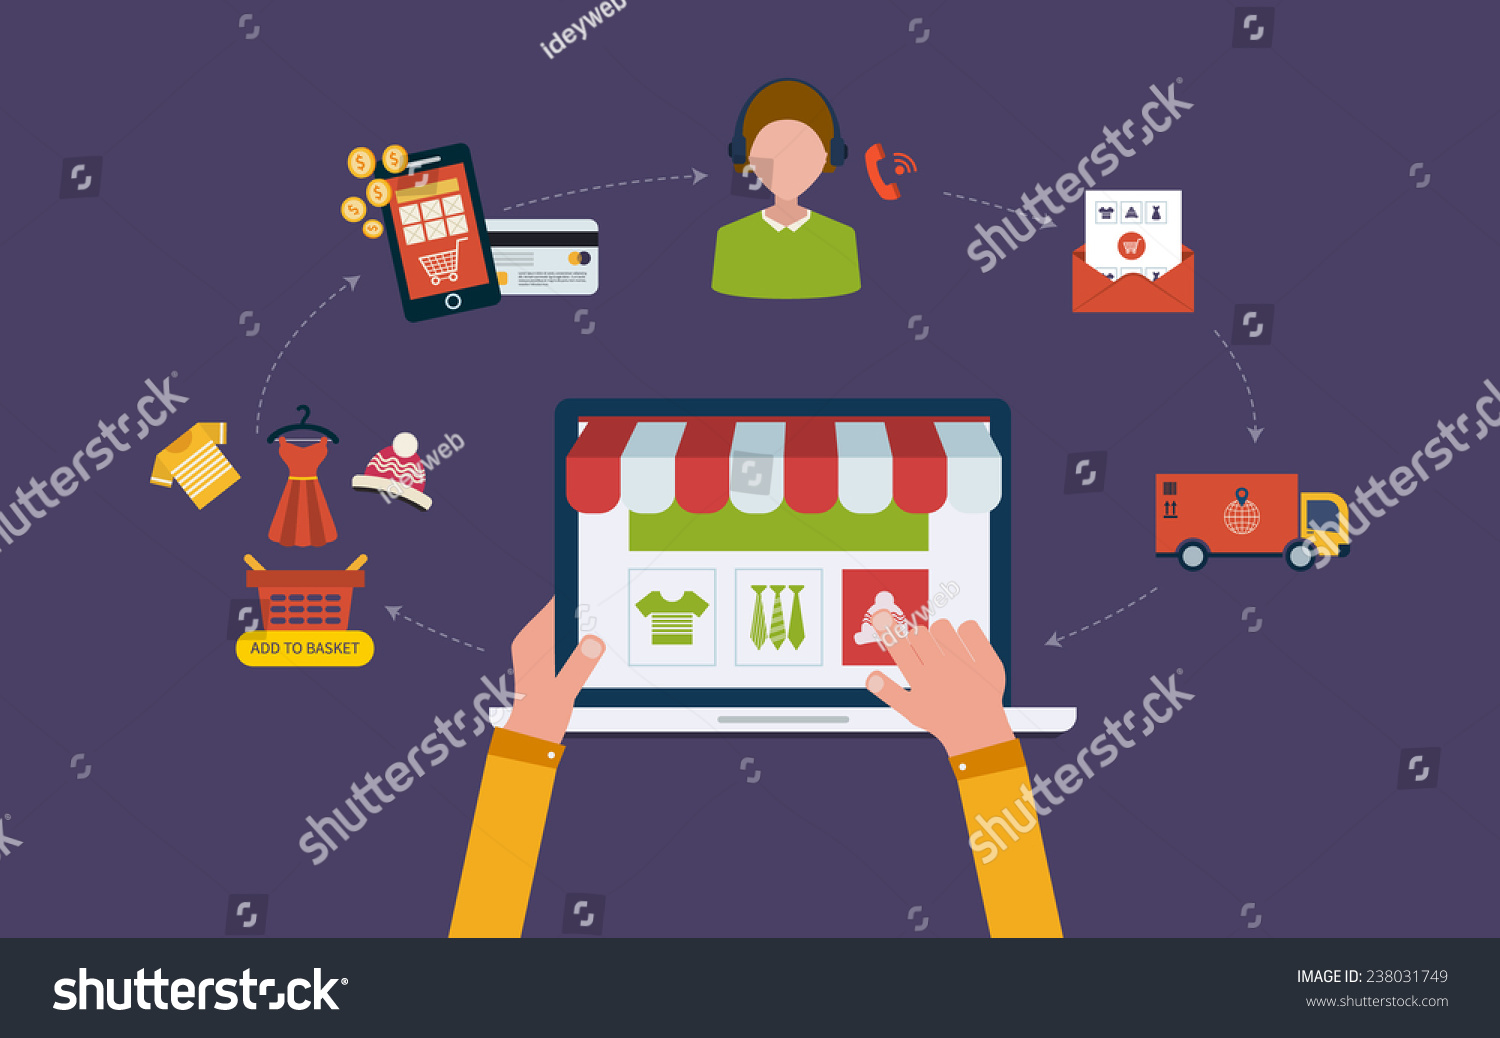 Mobile Marketing Online Store Concept Flat Stock Vector 238031749 ...